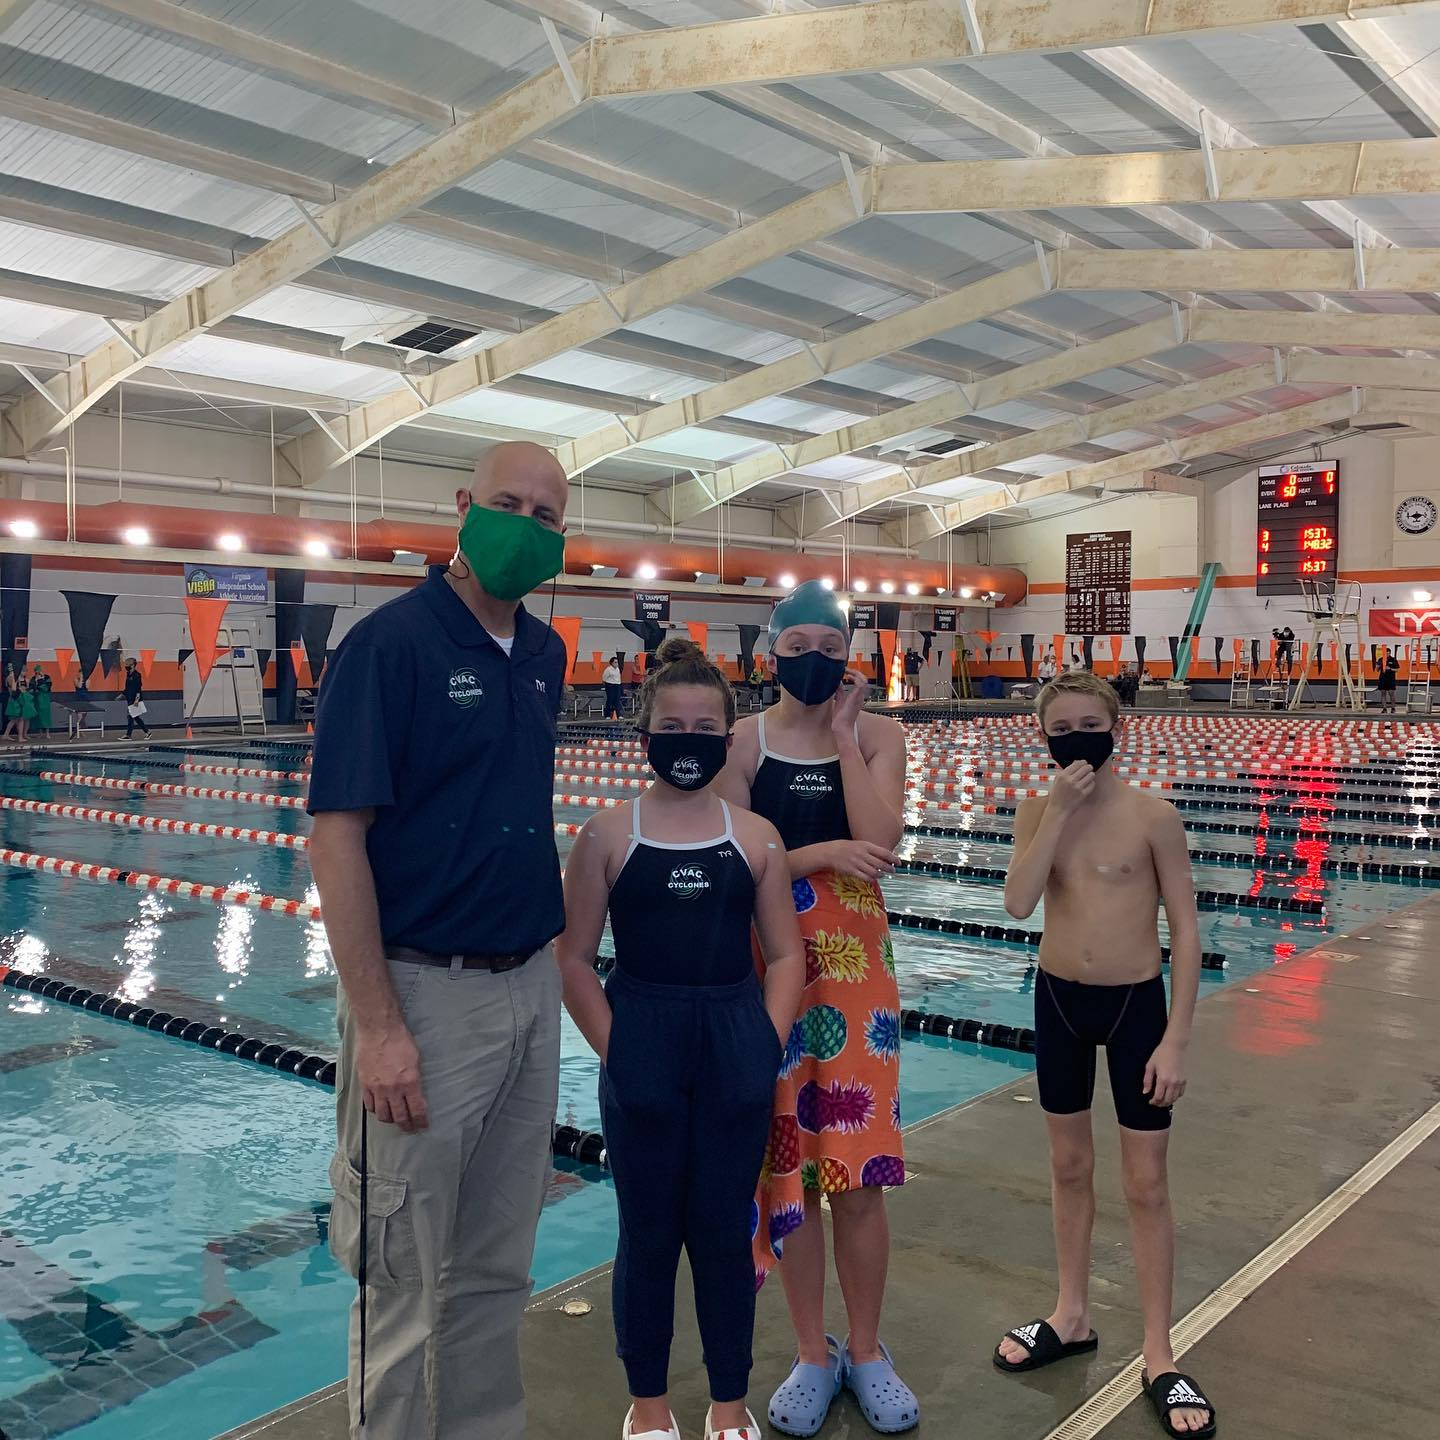 Coach and Age Group swimmers on deck